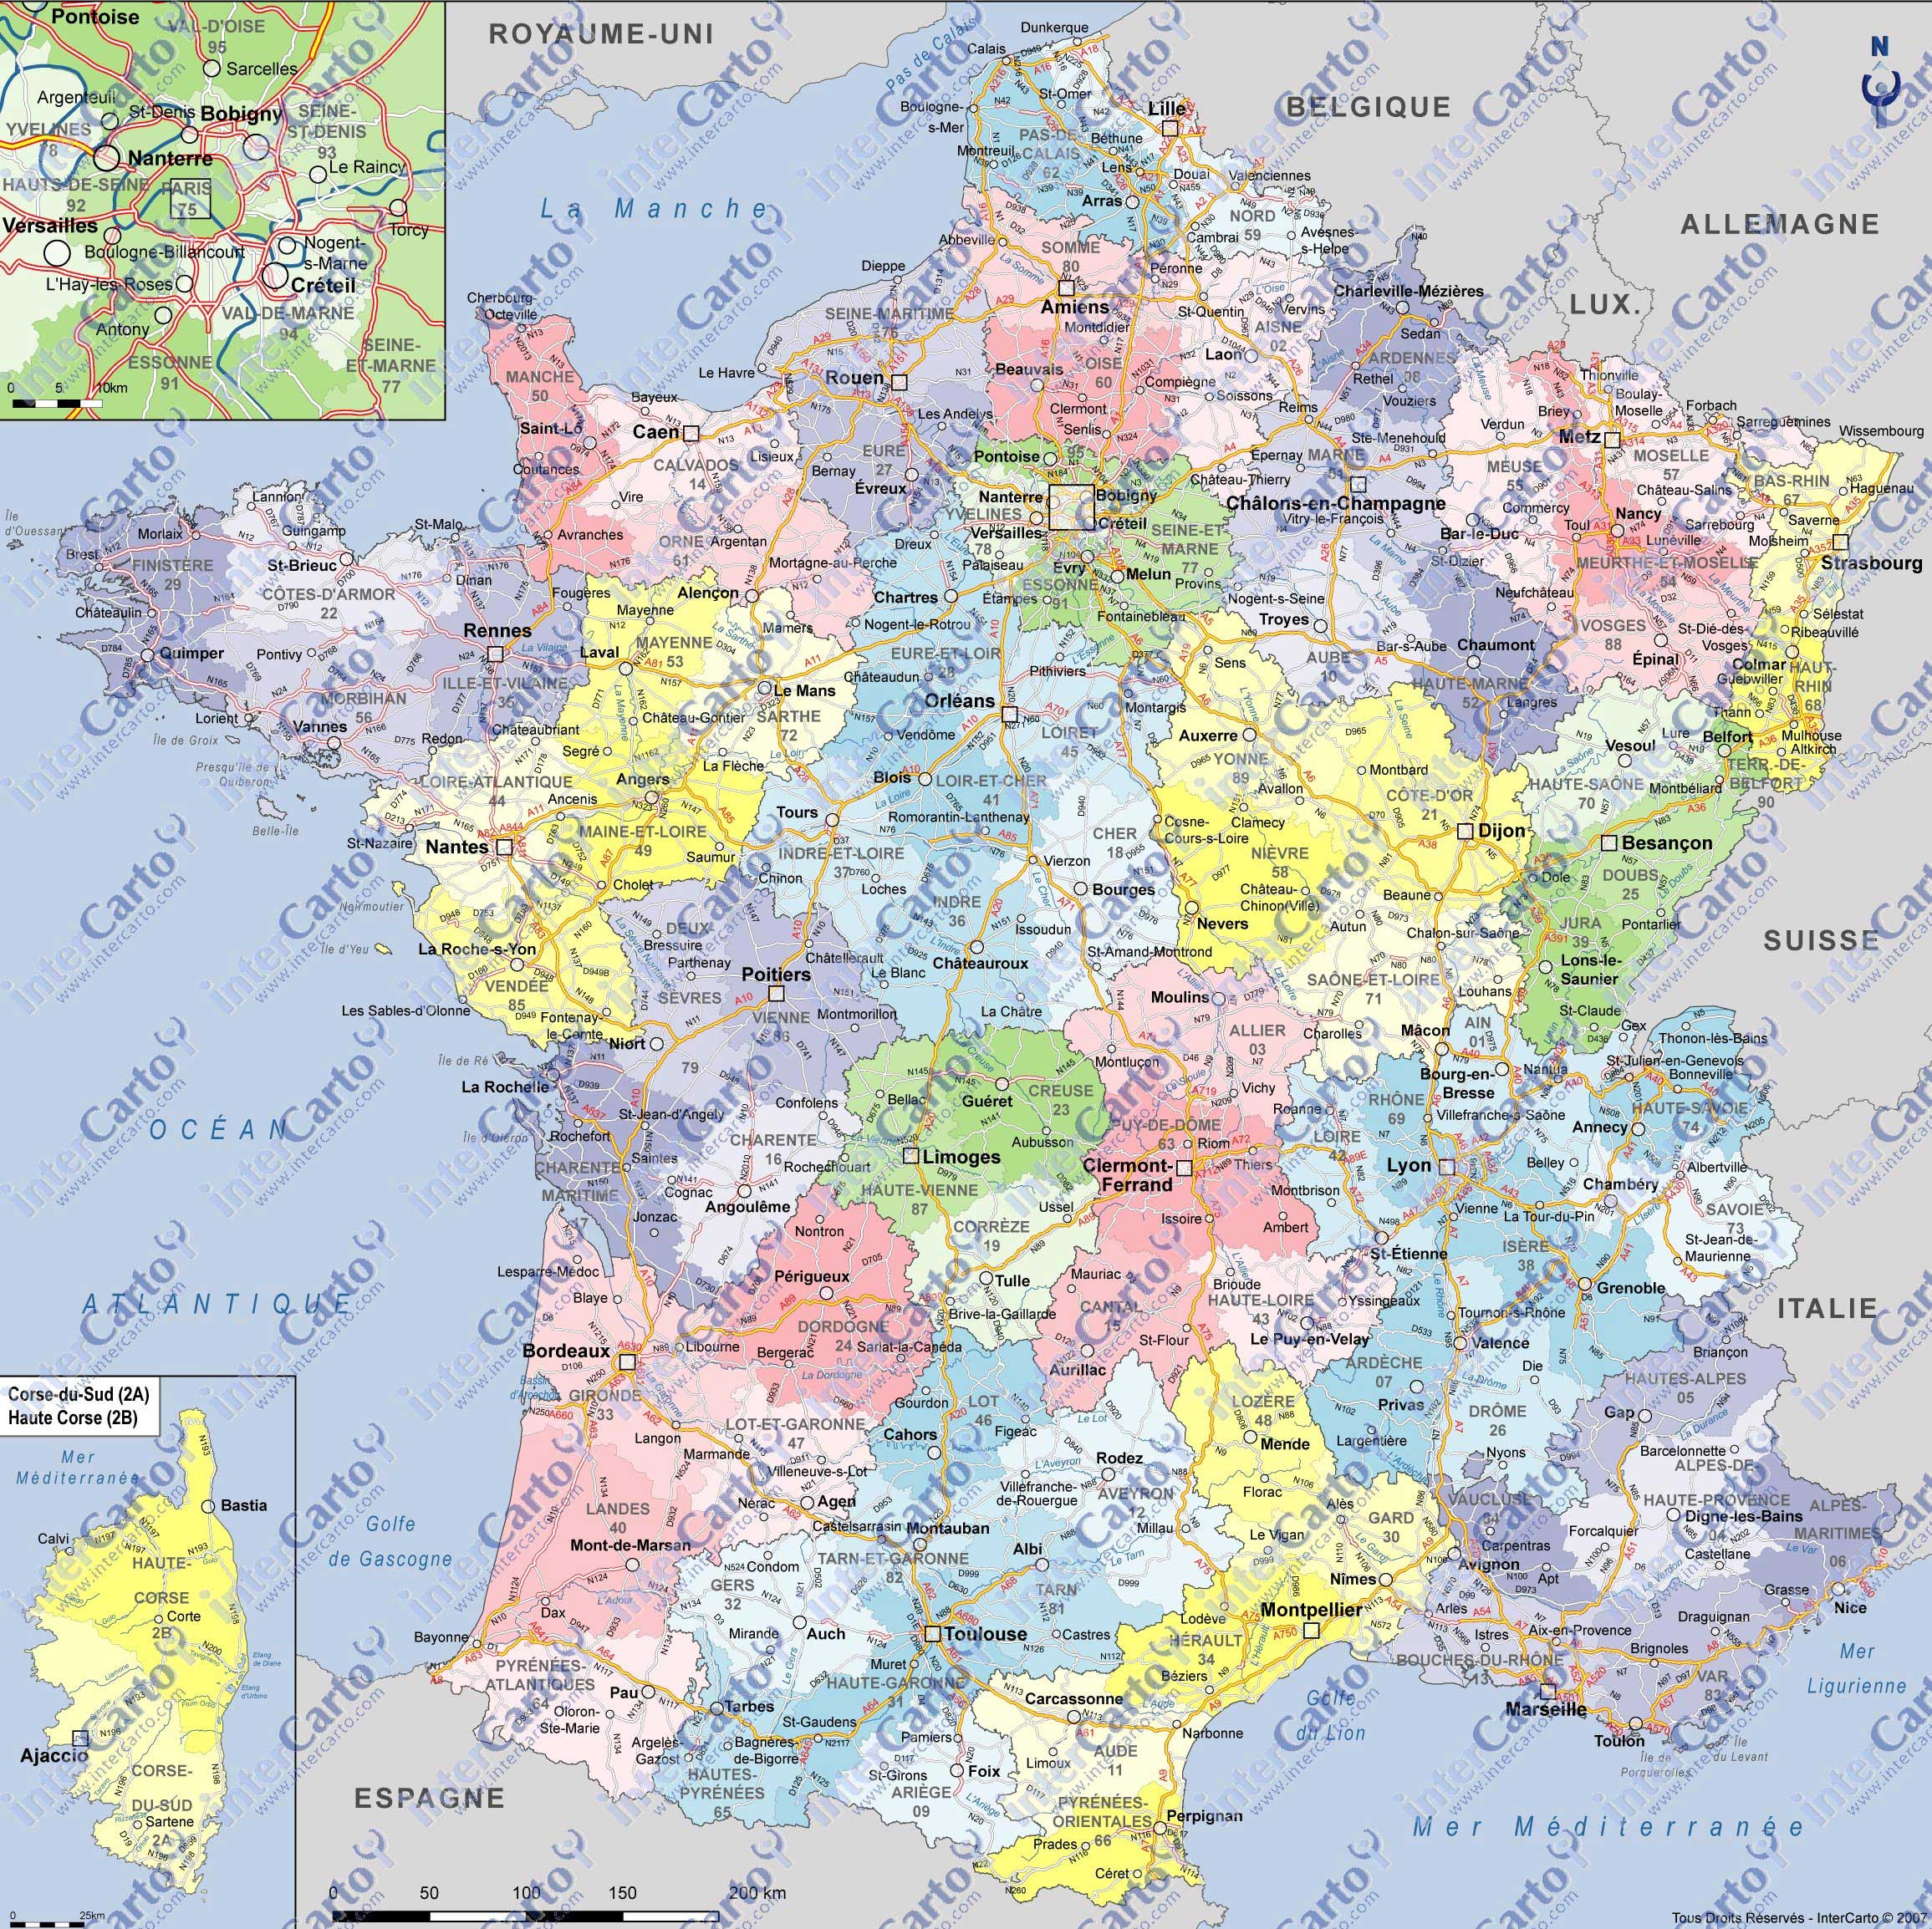 Cartes De France » Vacances - Arts- Guides Voyages dedans Plan De La France Par Departement